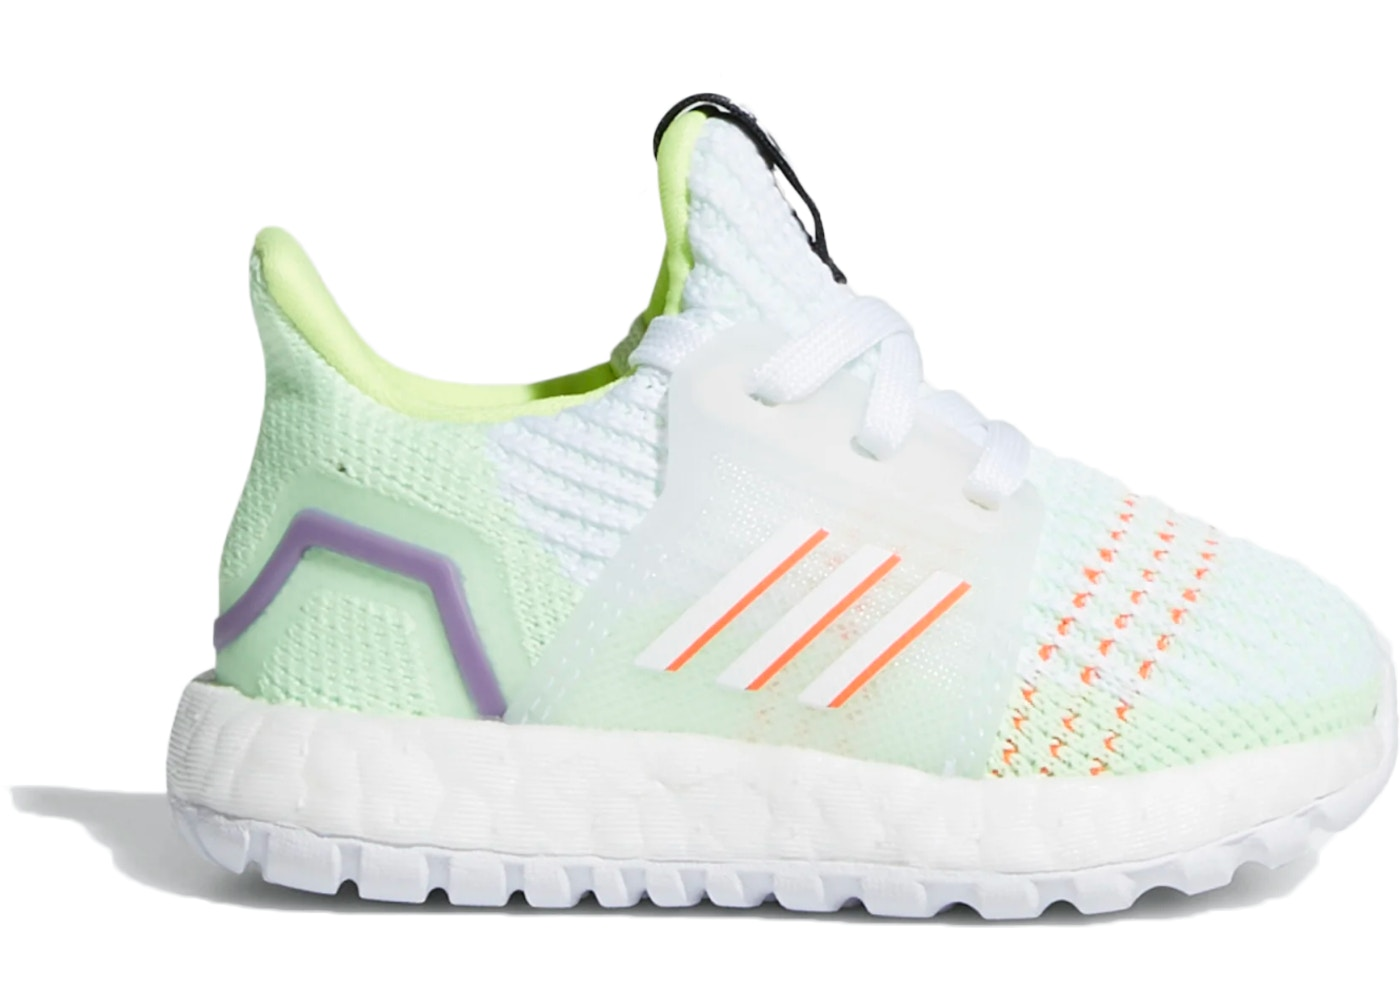 08a74f98e35 Sell. or Ask. Size: 9K. View All Bids. adidas Ultra Boost 2019 Toy Story  Buzz Lightyear (Toddler)